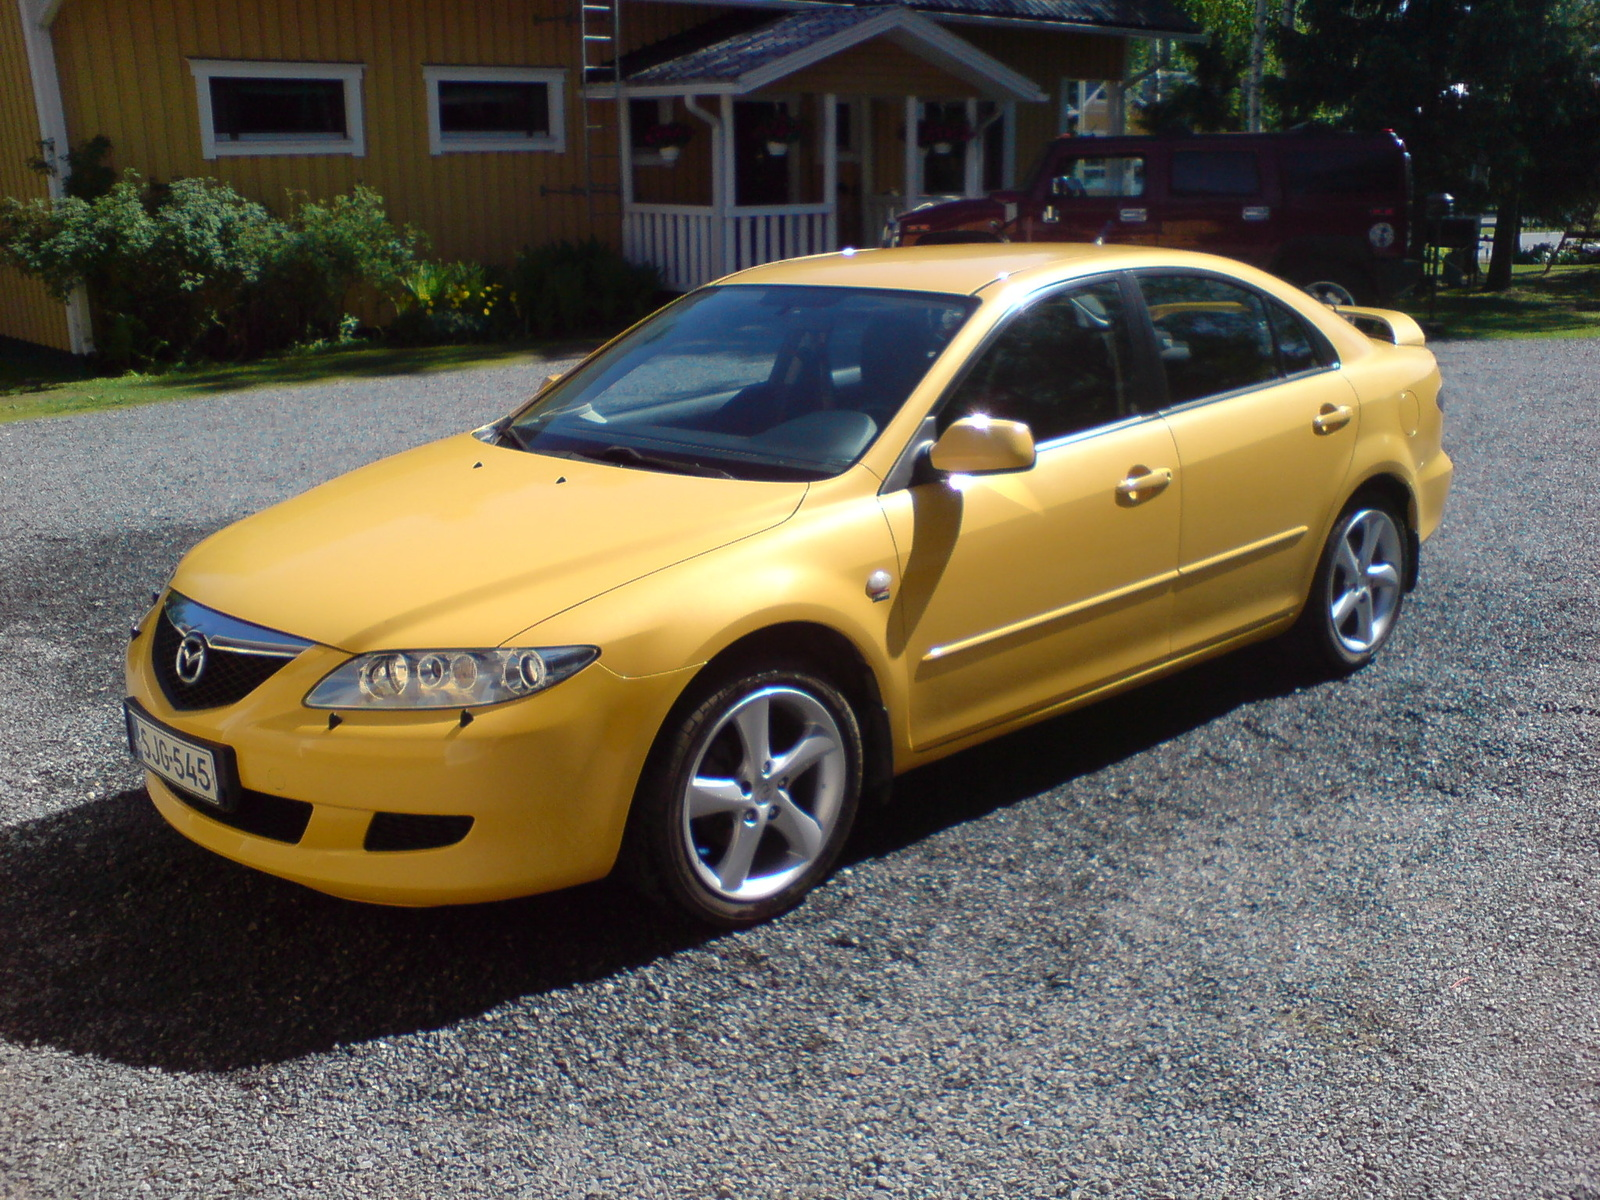 Picture of 2004 Mazda MAZDA6 4 Dr s Hatchback